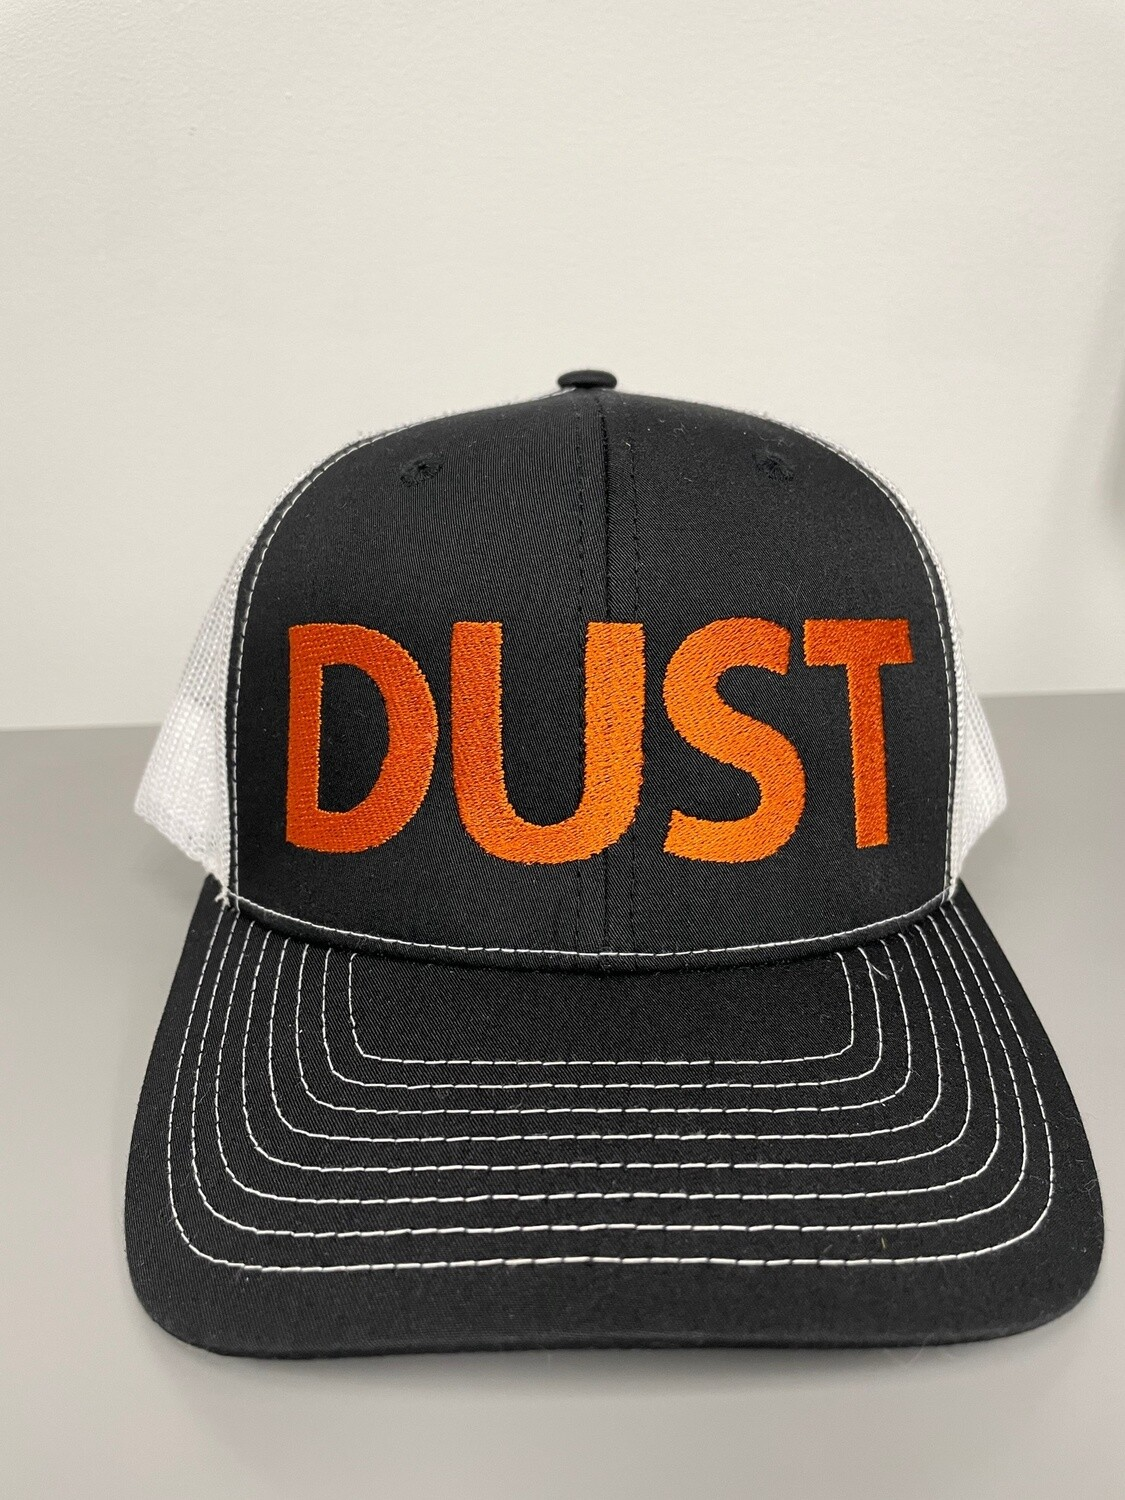 DUST Trucker Hat